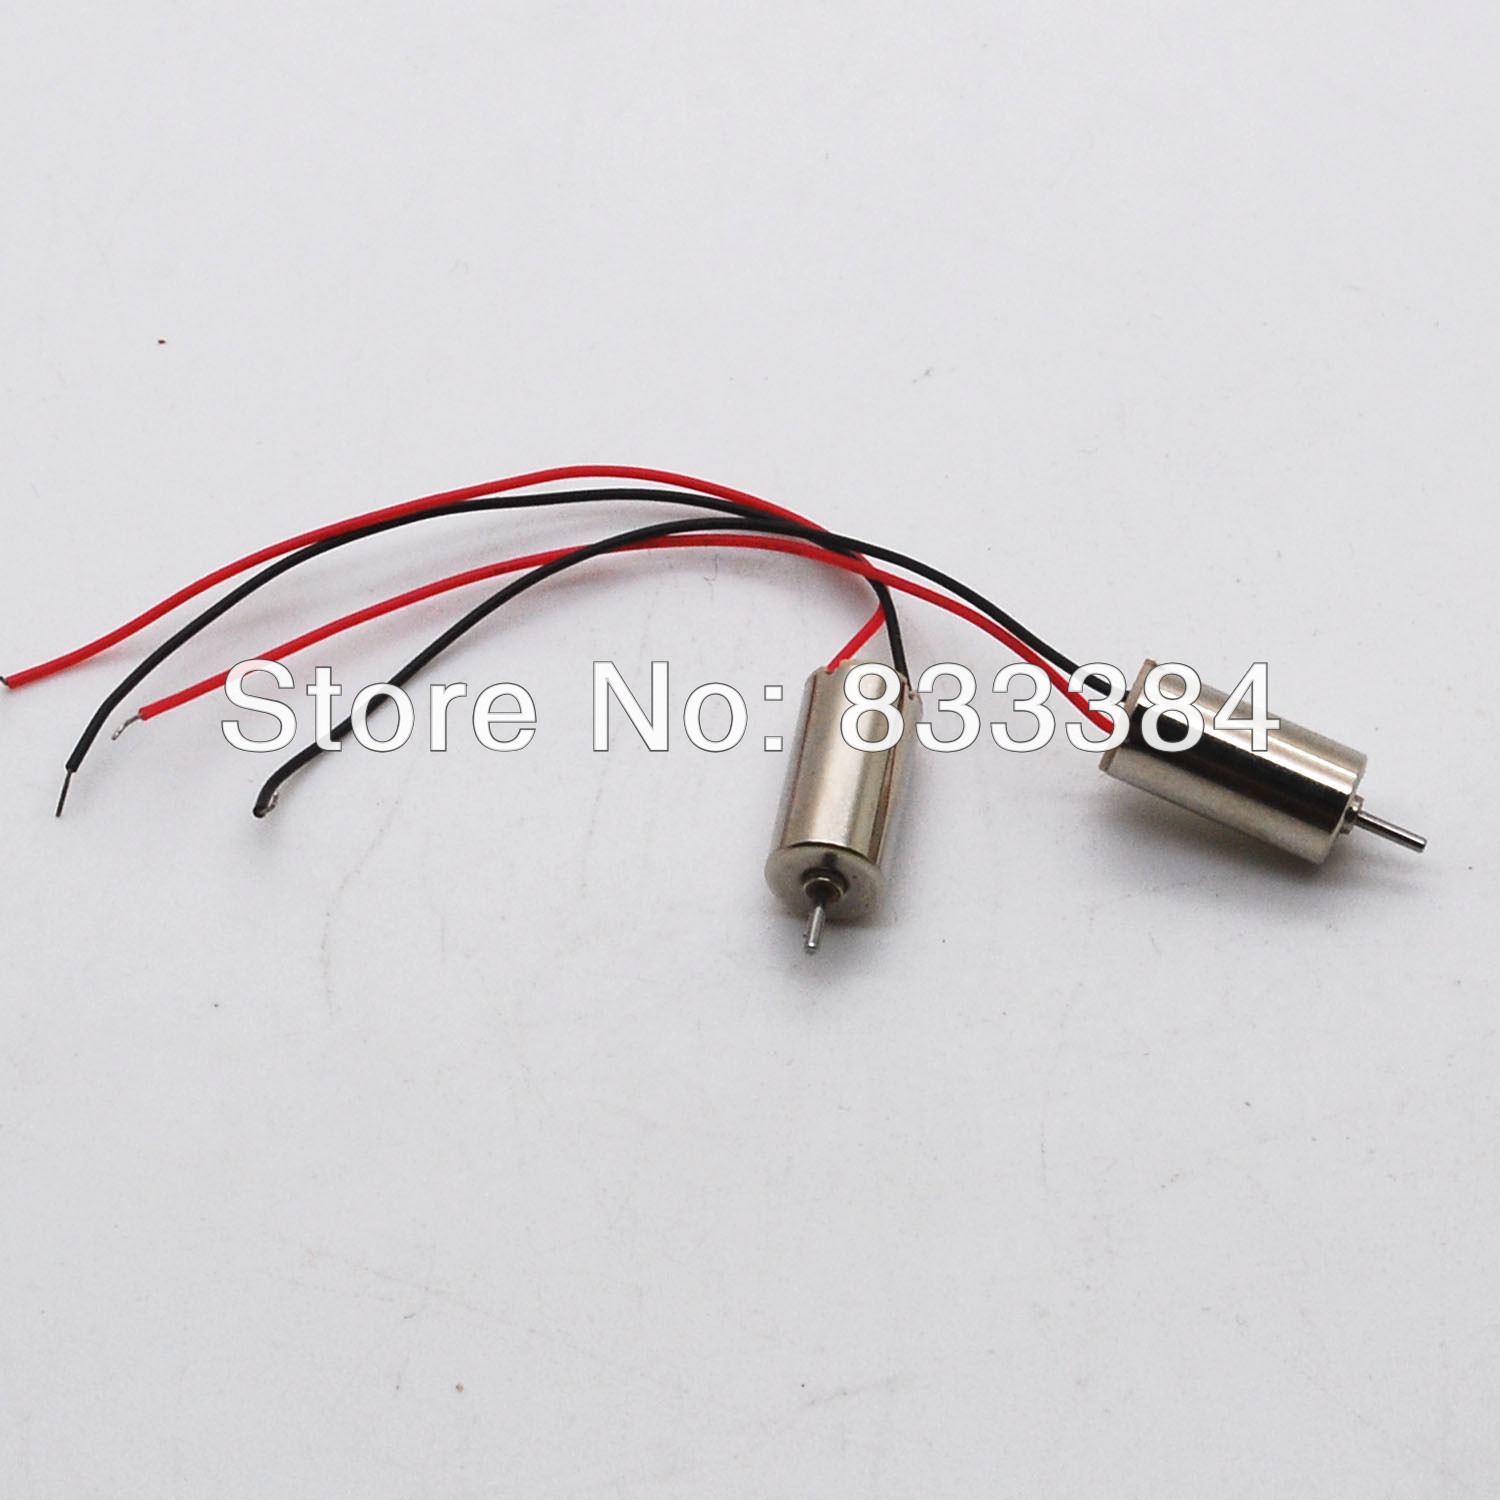 Free shipping 5pcs 15v 6x12mm coreless dc motor strong magnetic free shipping 5pcs 15v 6x12mm coreless dc motor strong magnetic high speed for helicopter model aircraft toys in dc motor from home improvement on sciox Image collections